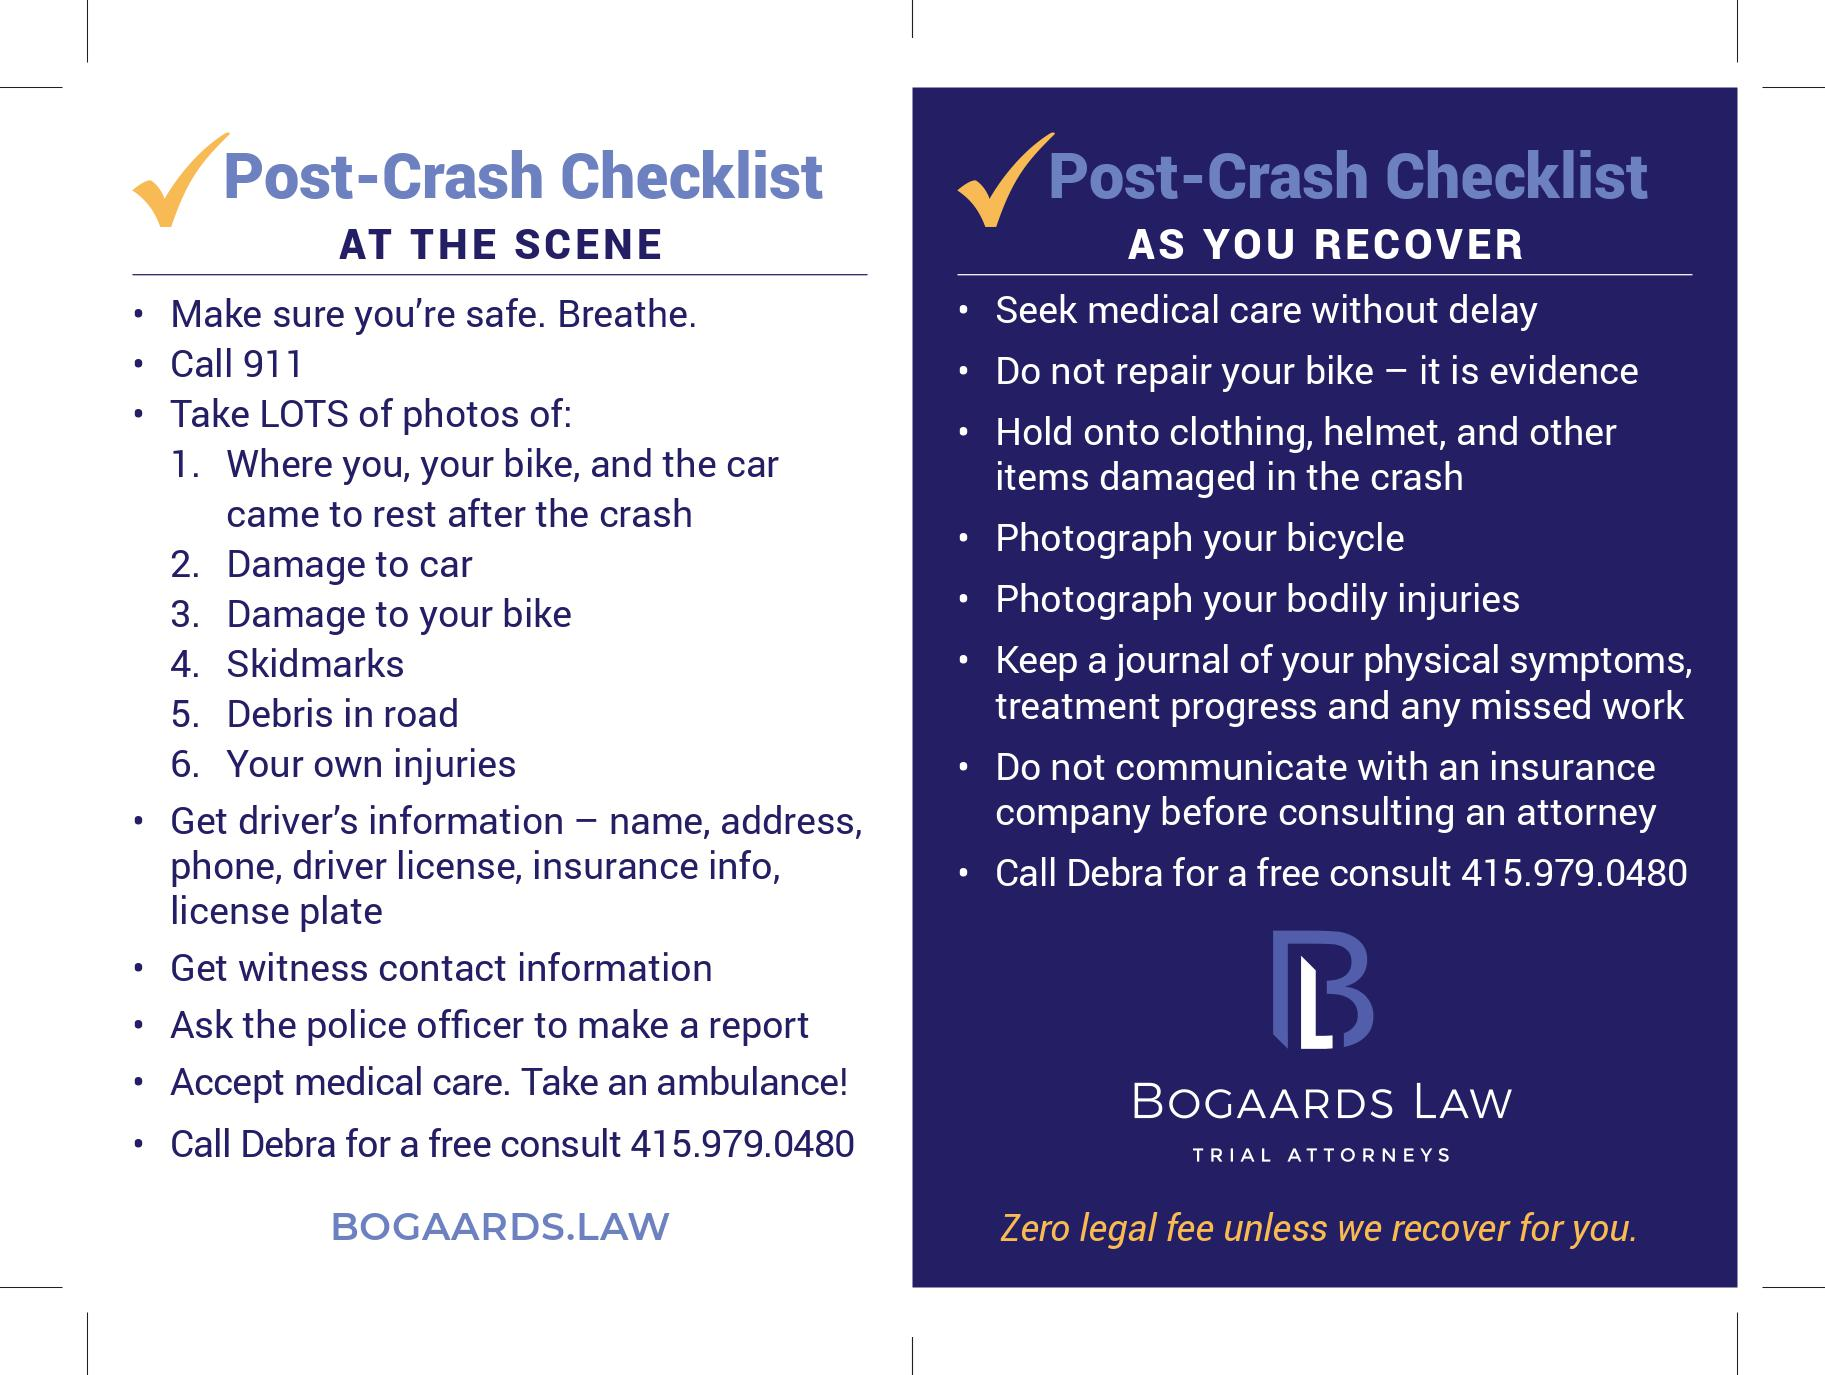 Post-Crash Checklist At the Scene by Bogaards Law